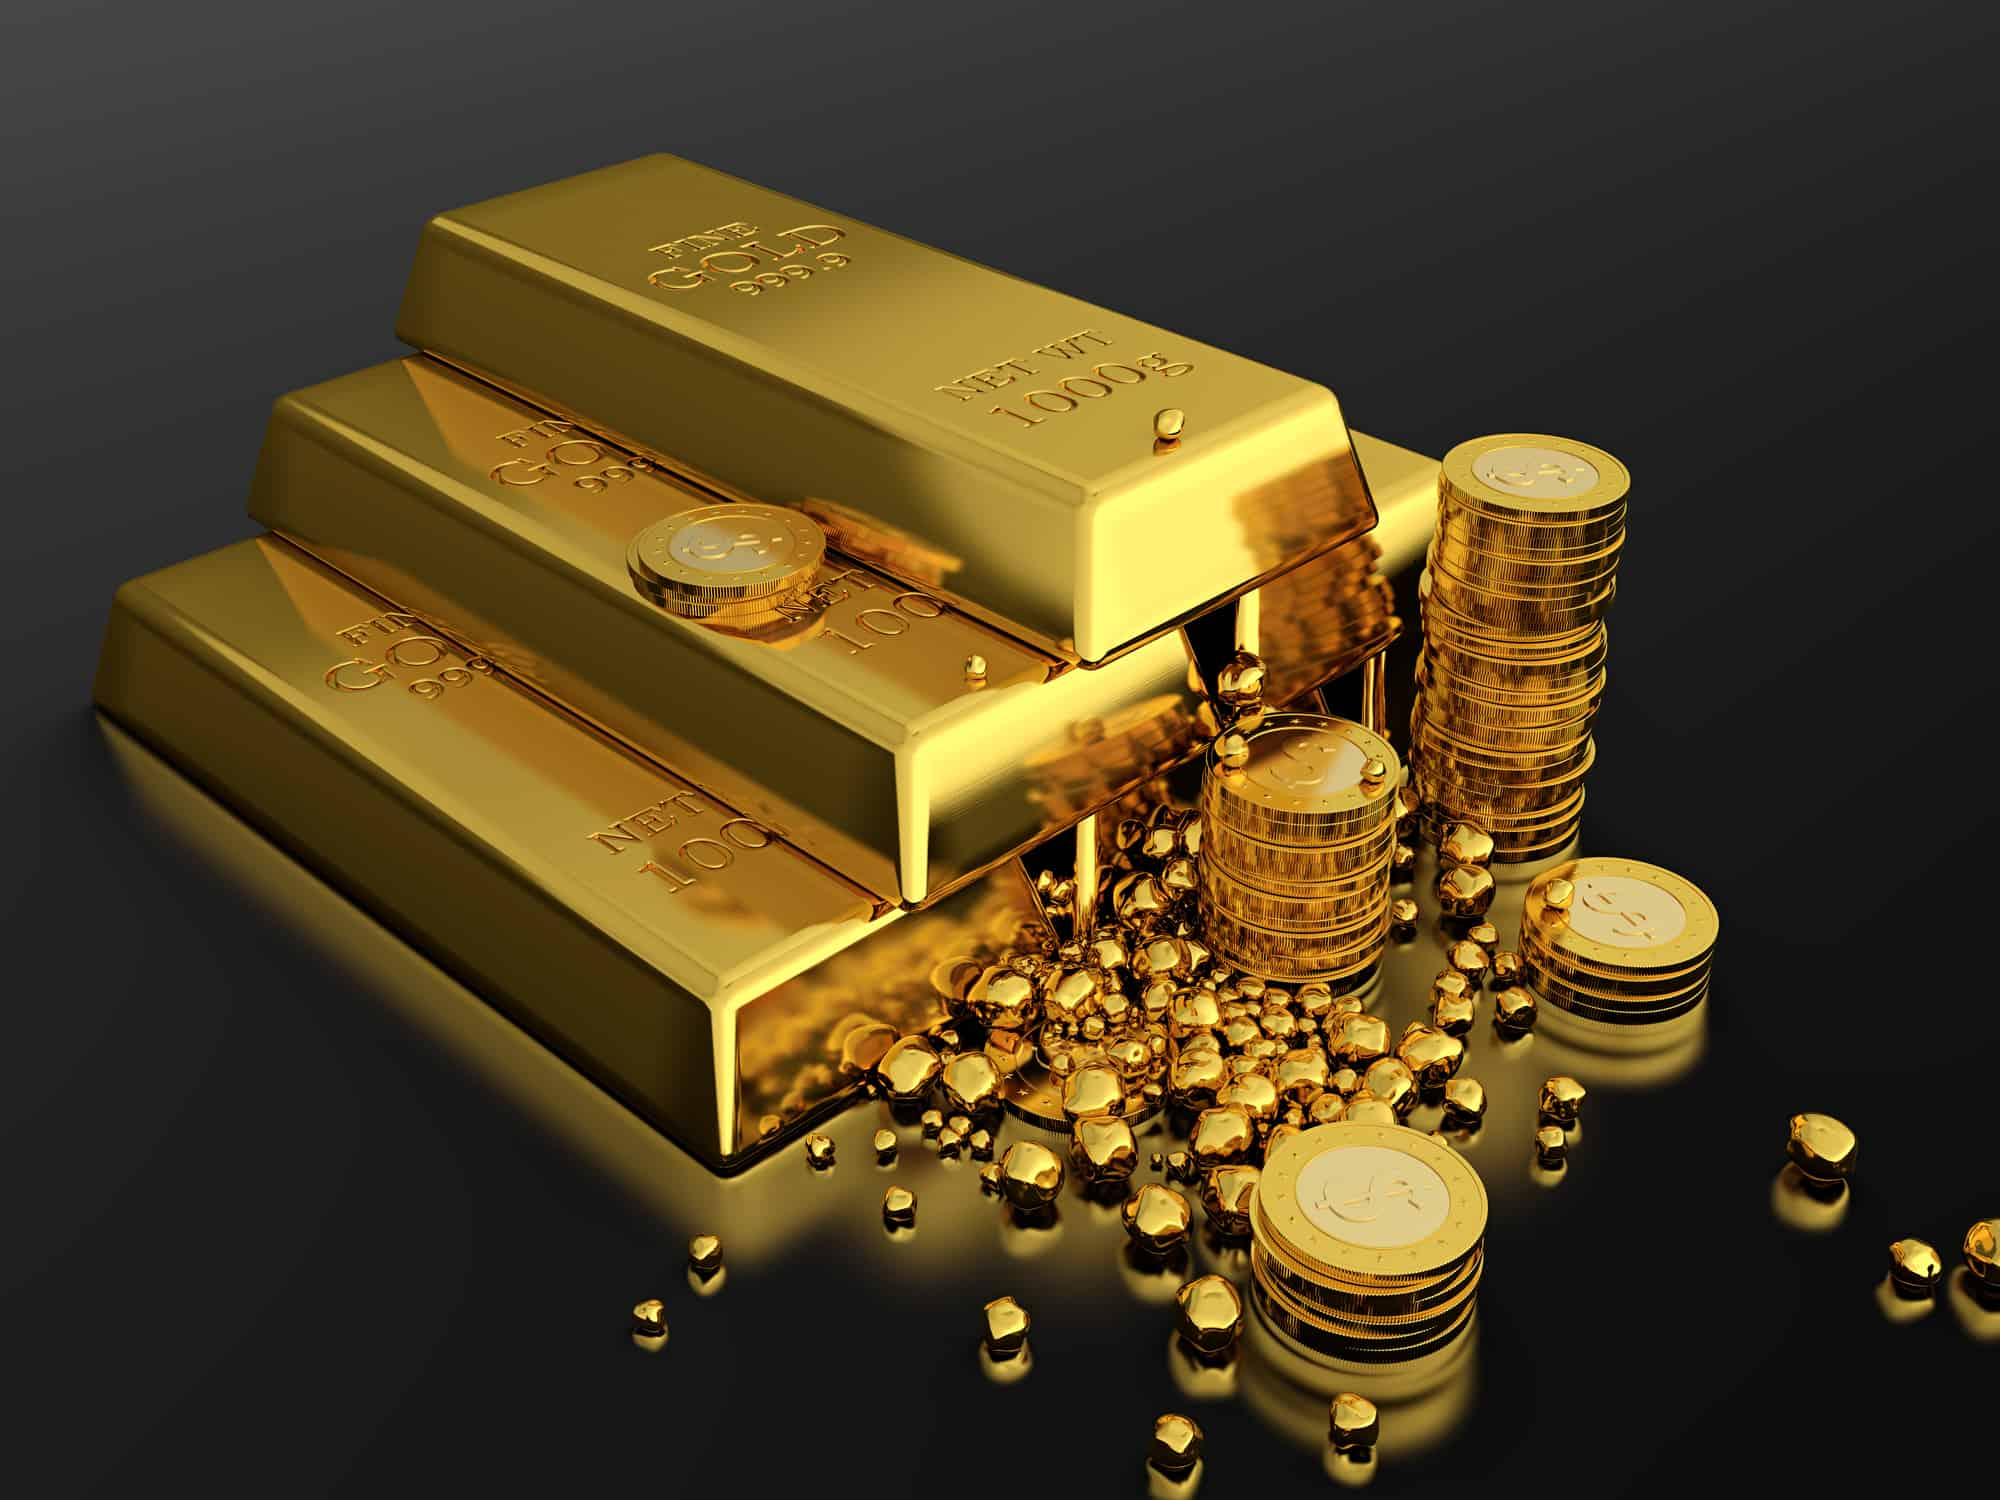 goldco ira reviews for investing in precious metals